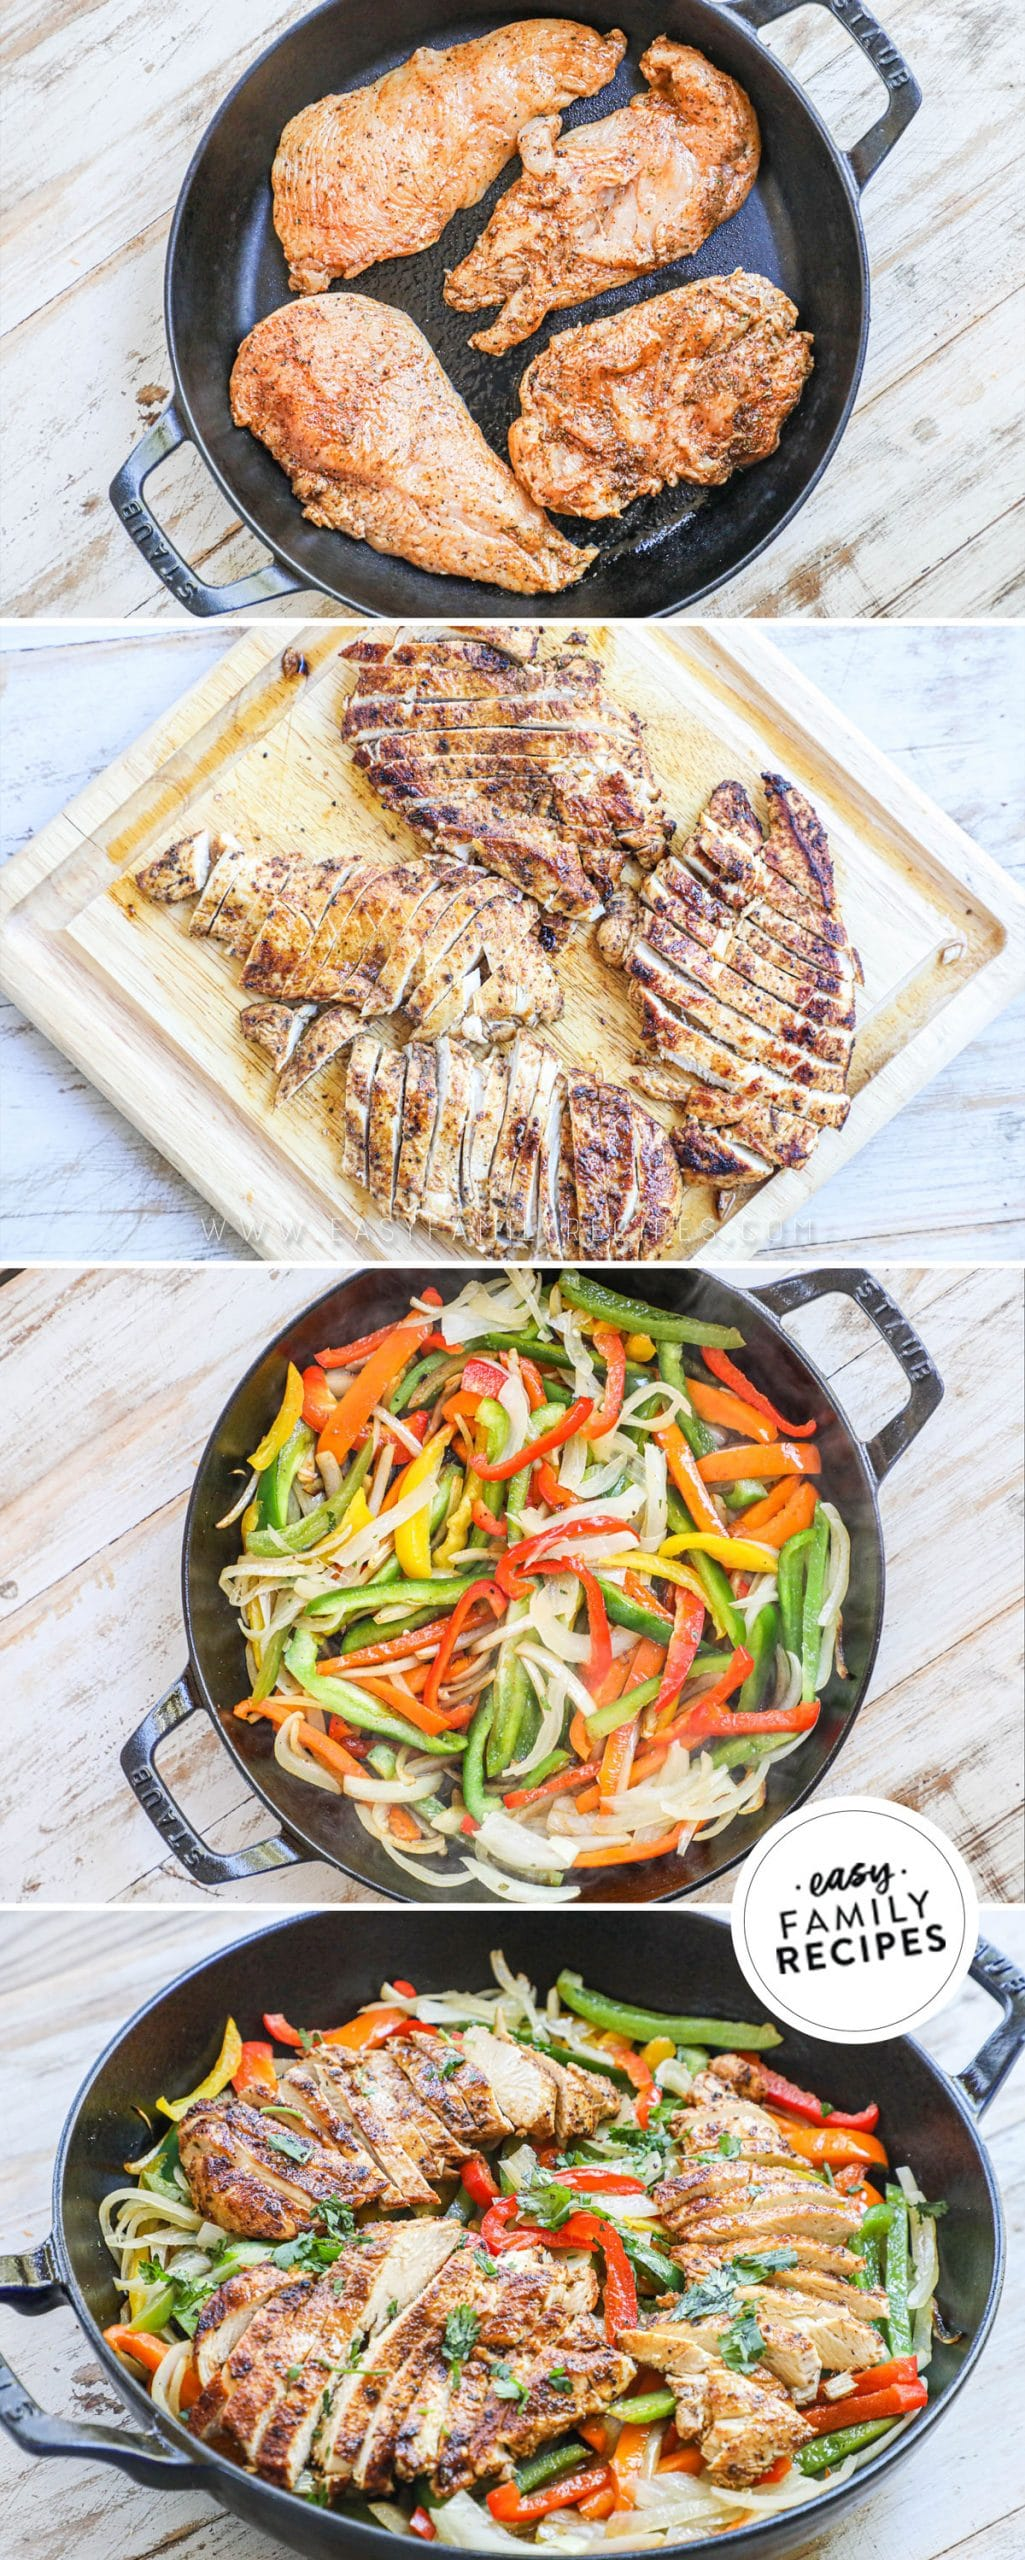 Process photos for how to make chicken fajitas in a skillet 1. Cook marinated chicken in cast iron skillet 2. Chop chicken 3. Cook onions and peppers 4. combine onions and peppers with cooked chicken